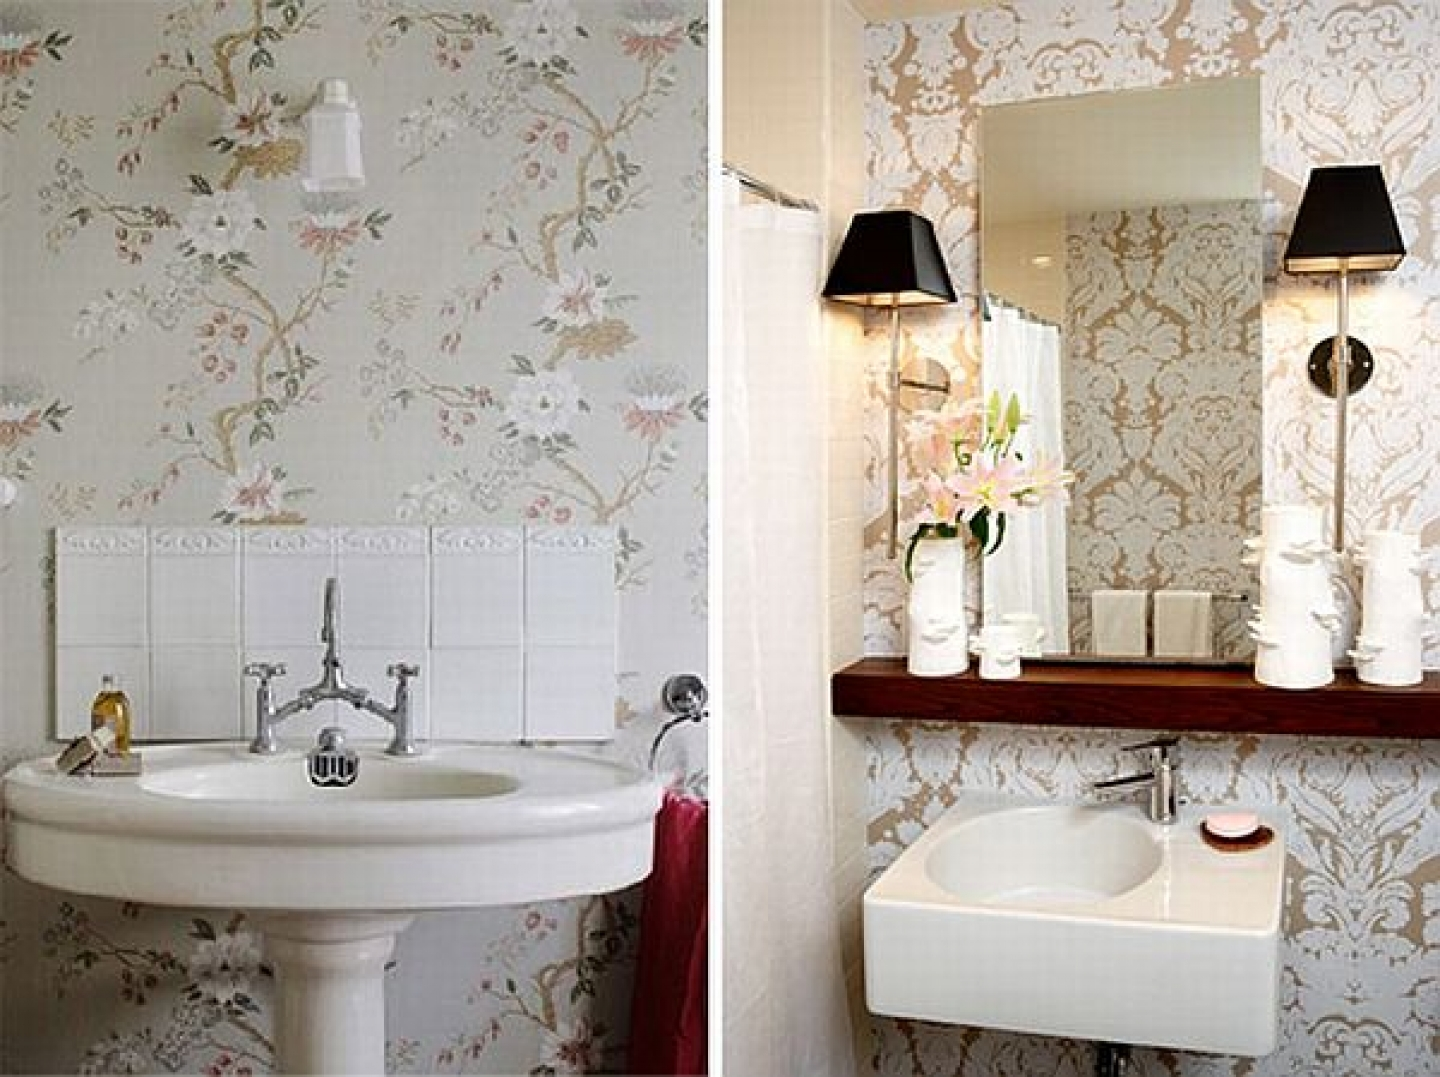 Bathroom wallpaper murals designs ideas picture 1440x1077